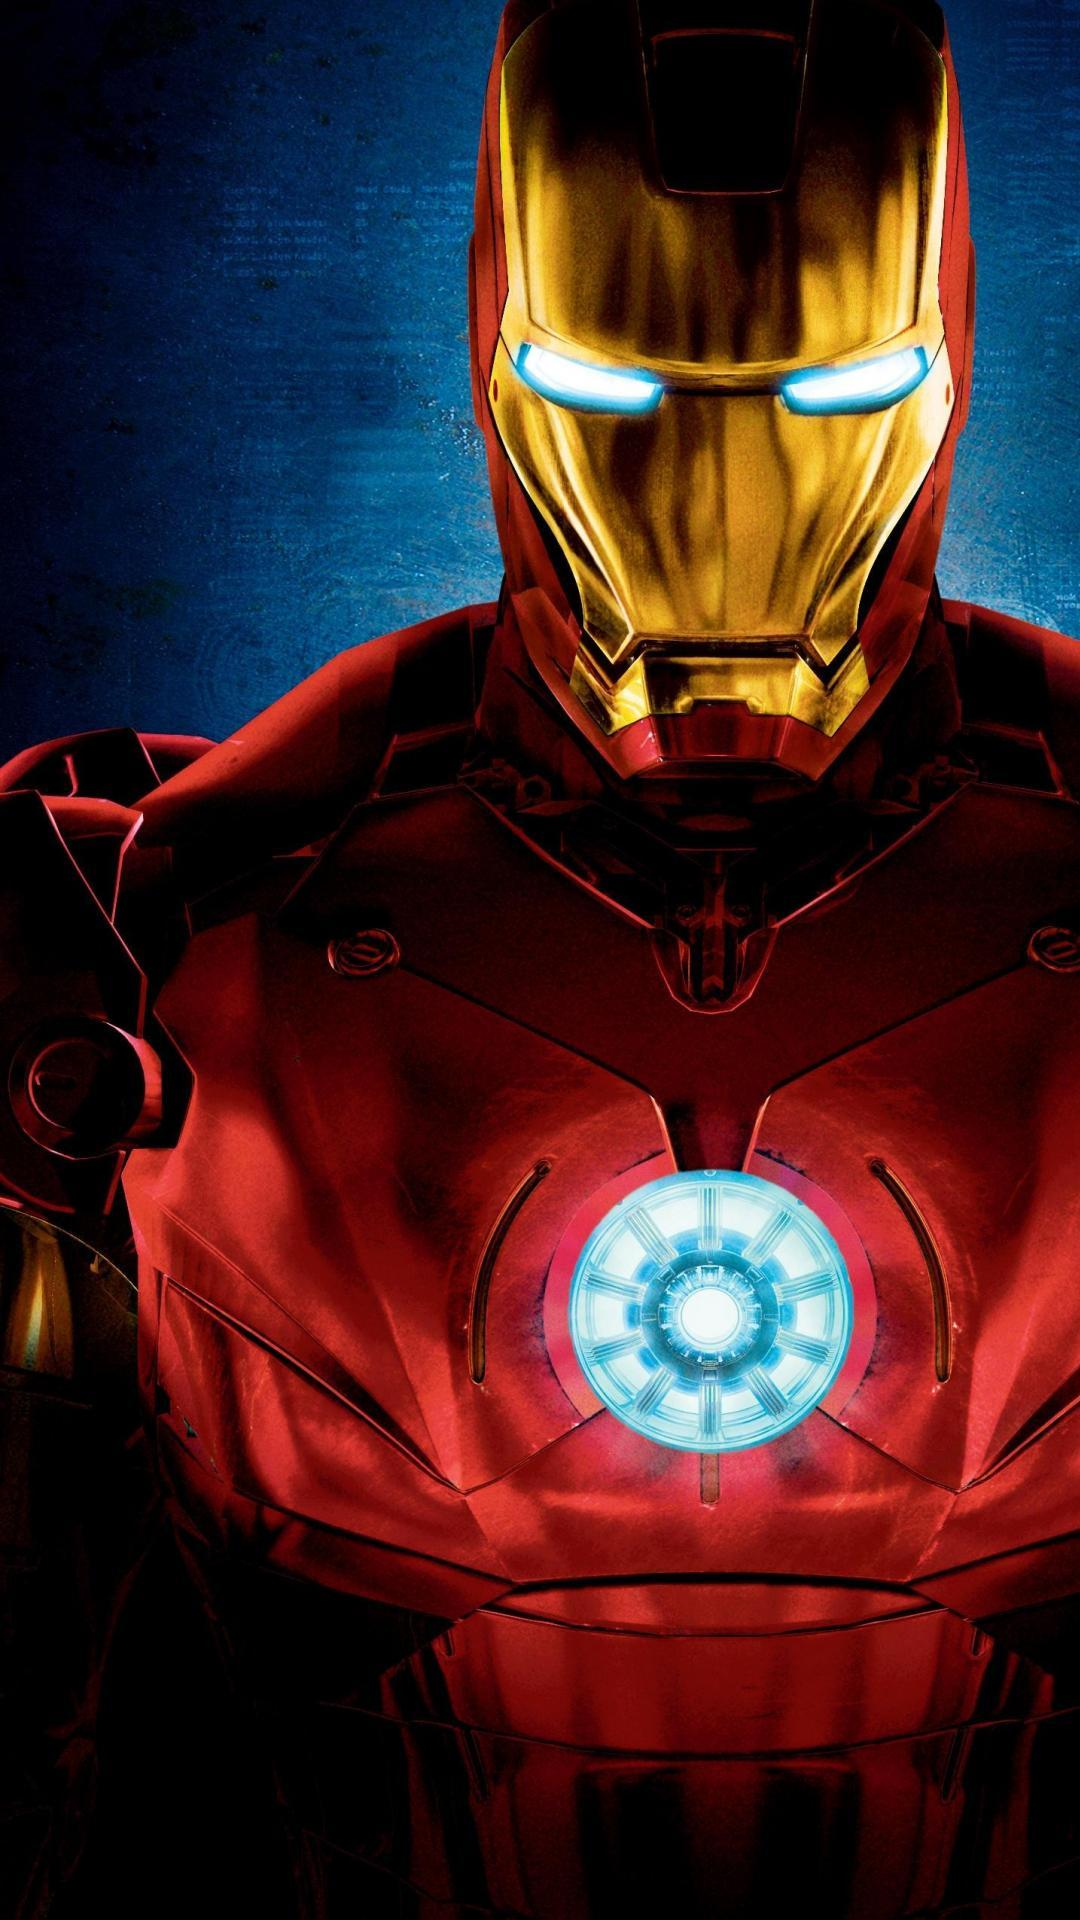 Ironman 3 wallpapers for mobile wallpaper cave - Iron man wallpaper cartoon ...